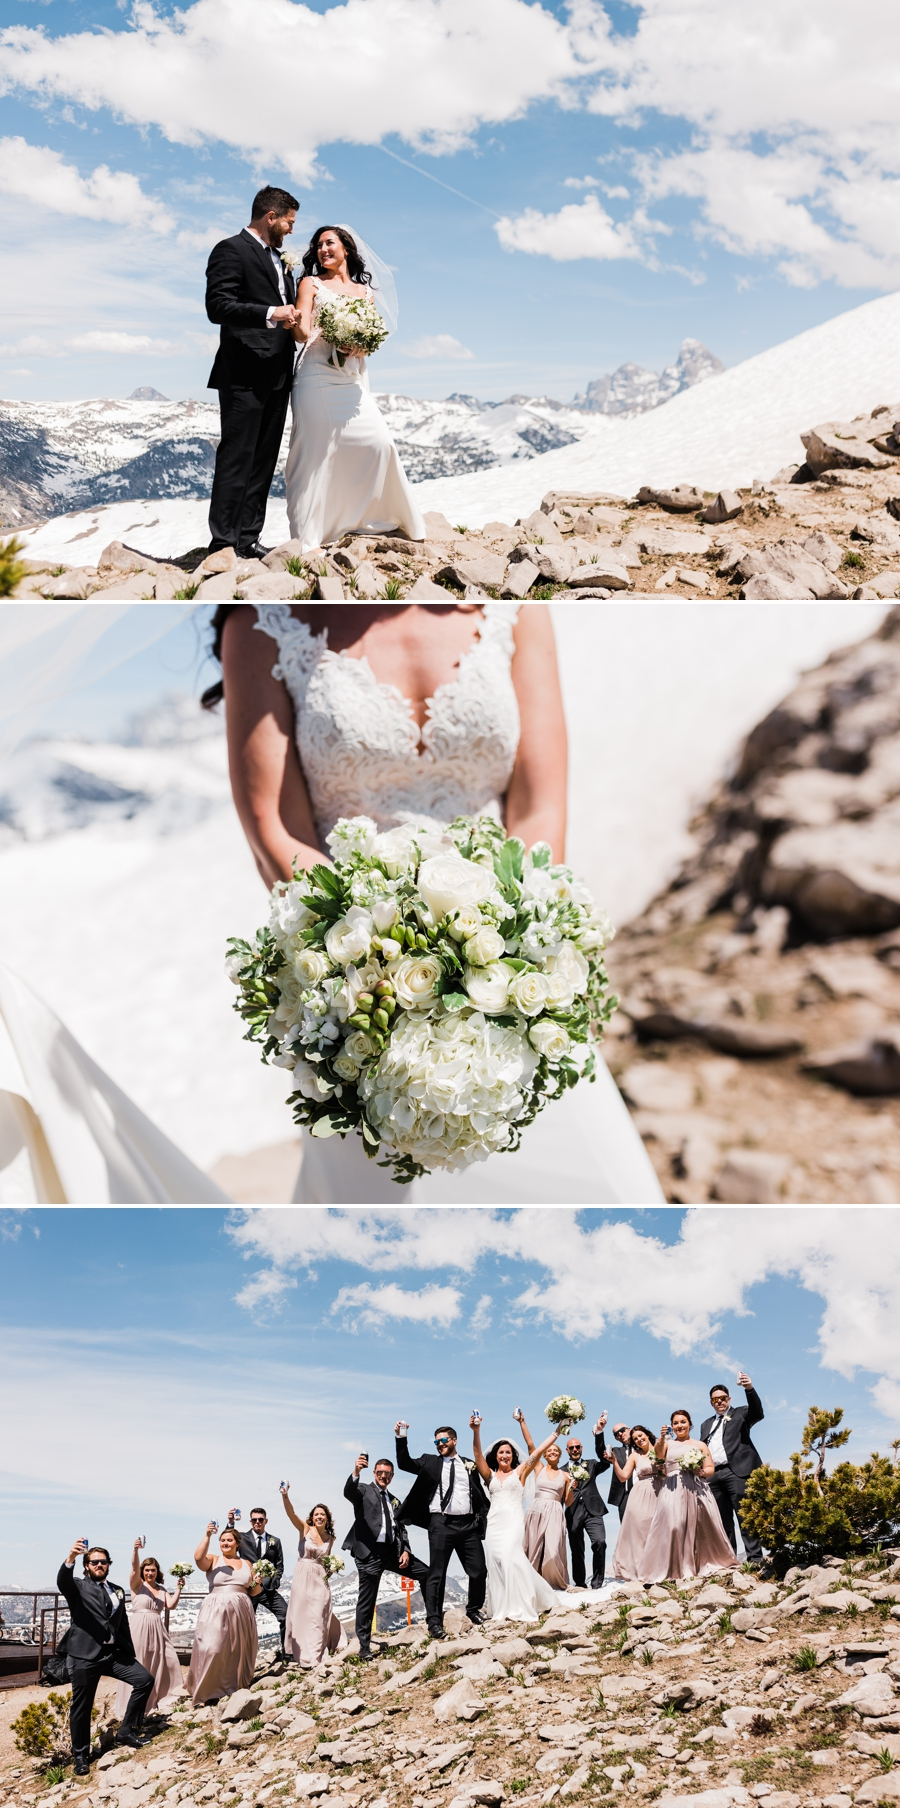 A bride and groom take photos with mountain wedding photographer Amy Galbraith at Grand Targhee Resort